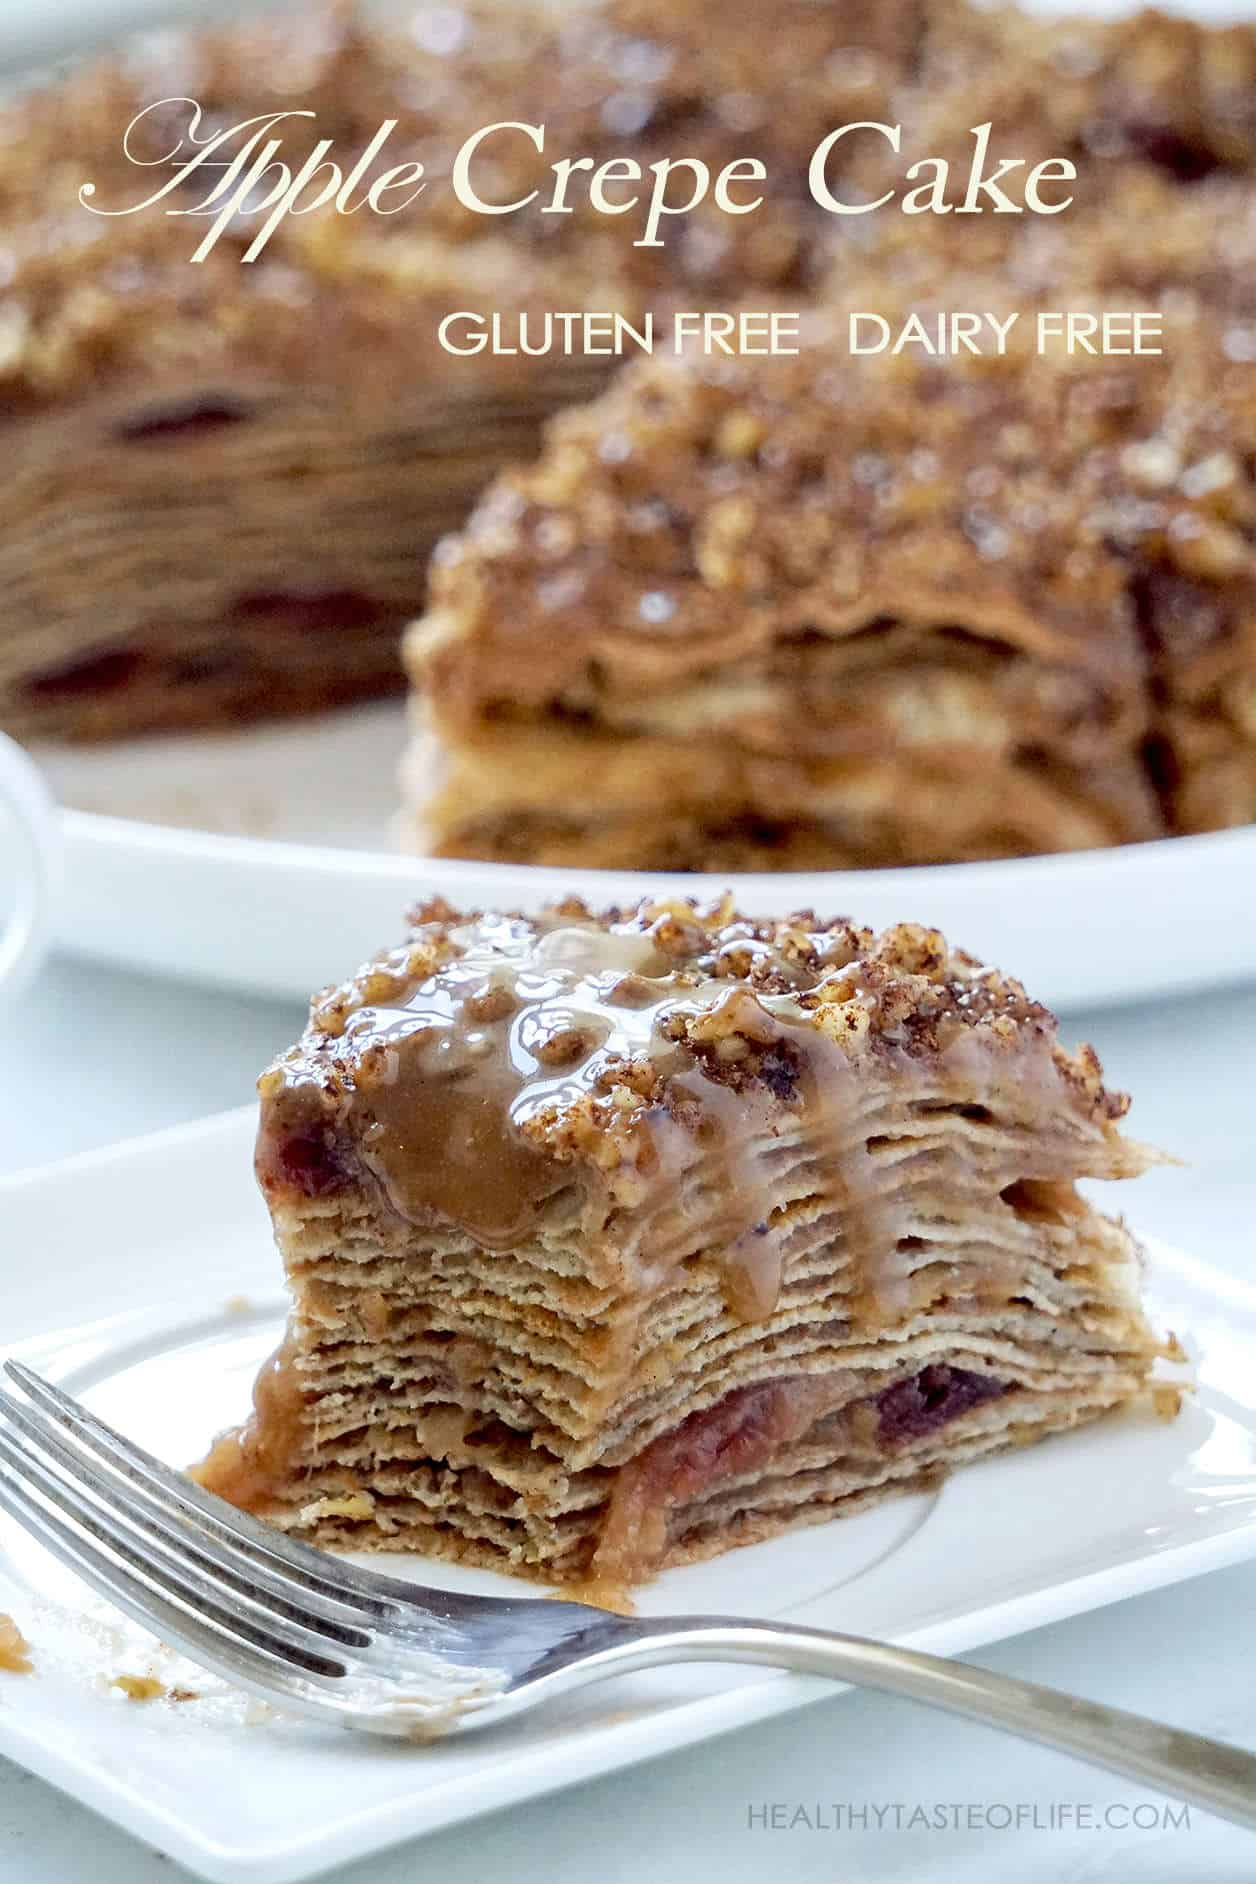 Healthy Apple Crepe Cake – a gluten free, dairy free and refined sugar free dessert with cinnamon and naturally sweetened with honey. This apple crepe cake recipe consists of 15 layers of thin gluten free and dairy free crepes separated with flavorful cooked apples and served with a drizzle of dairy free caramel.